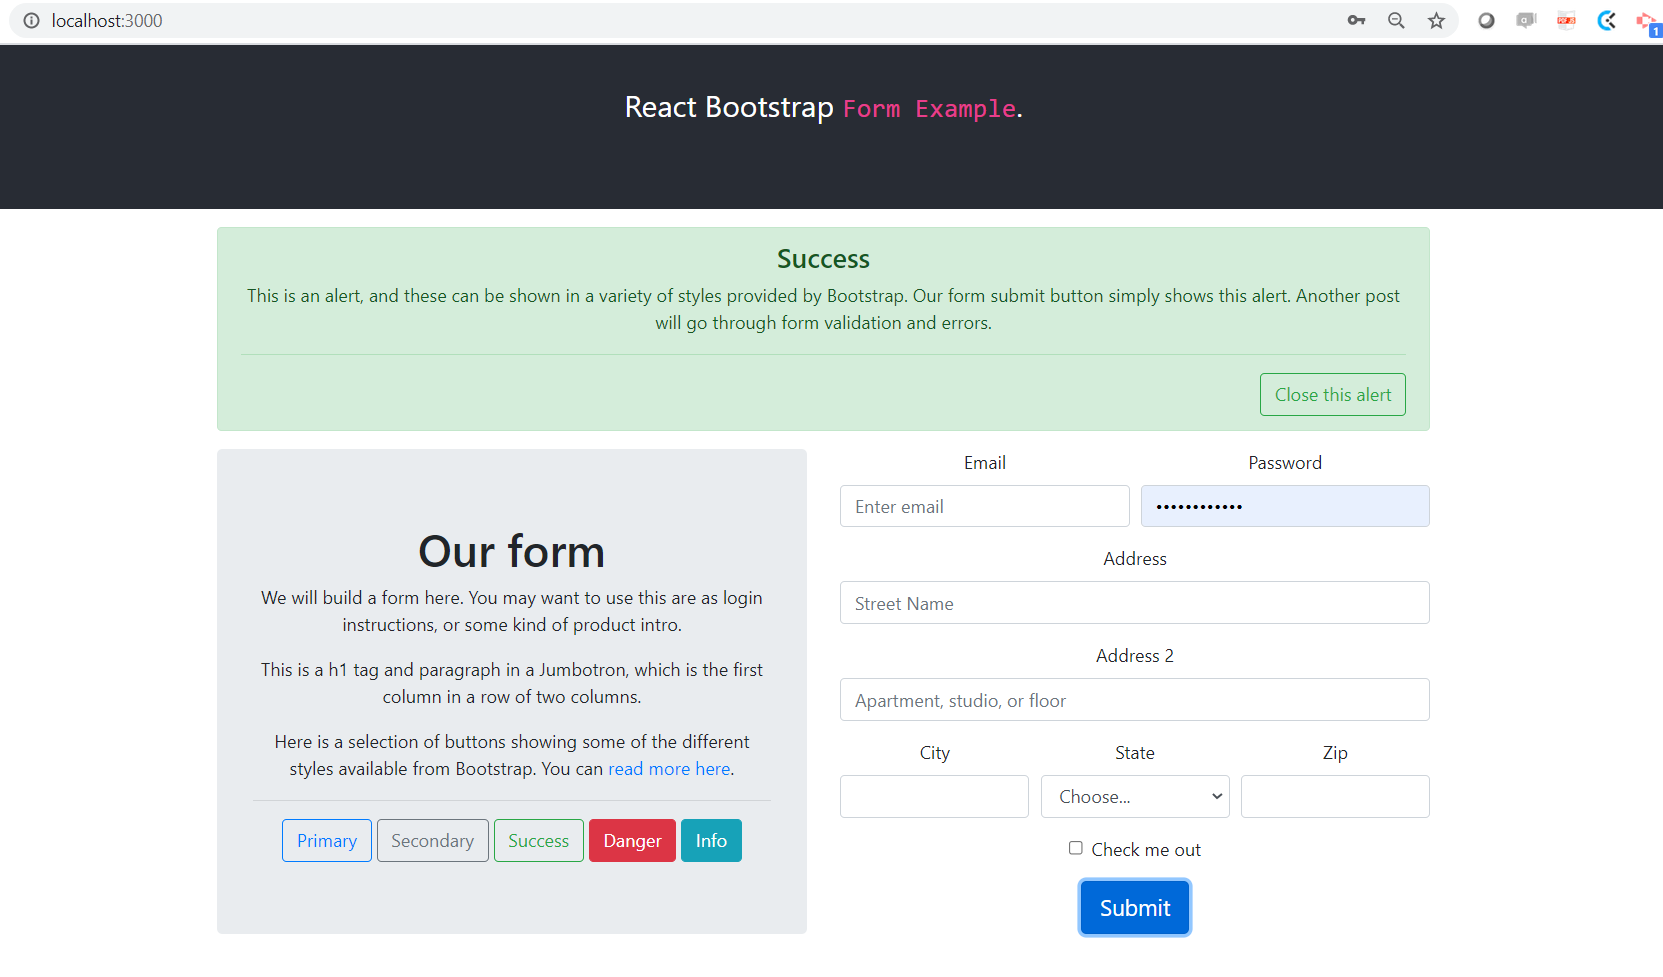 a react bootstrap form example